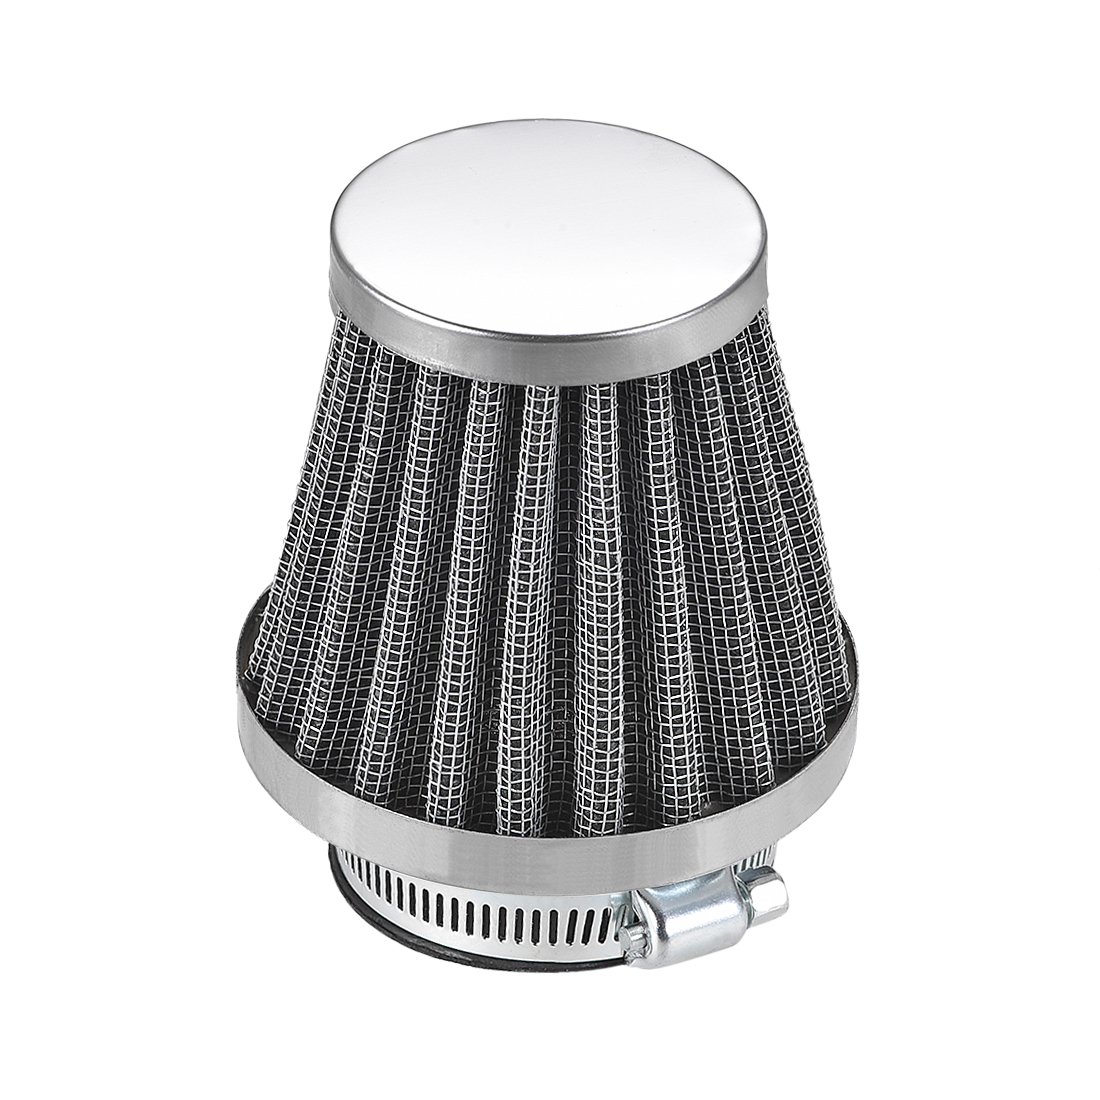 39mm Air Filter for 50cc 110cc 125cc 150cc 200cc gy6 Moped Scooter Atv Dirt Bike